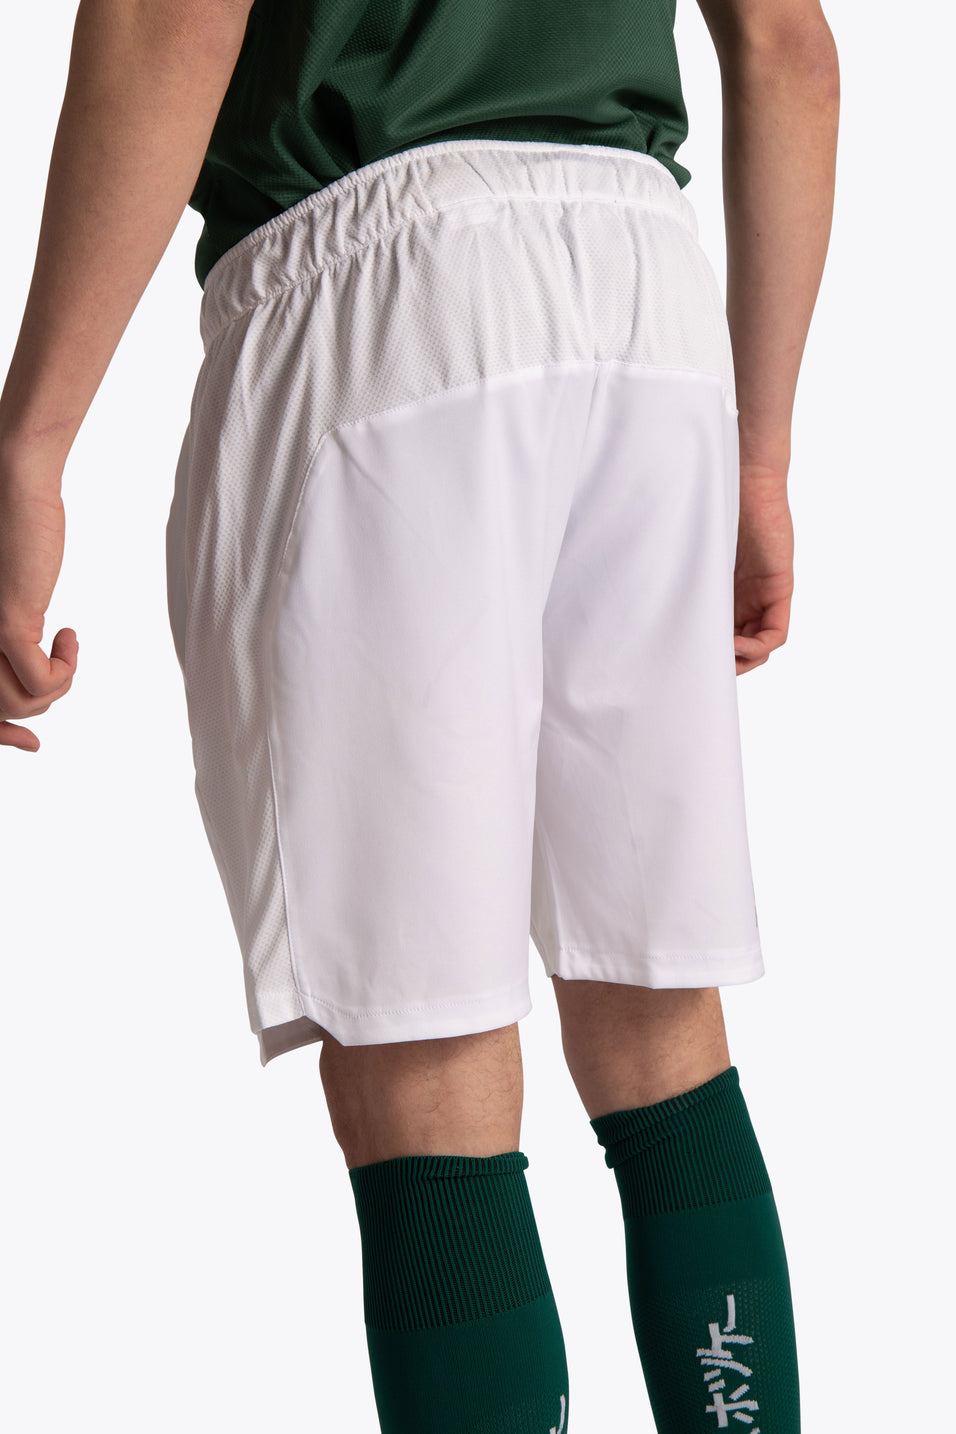 Uhlenhorst Men Short - White